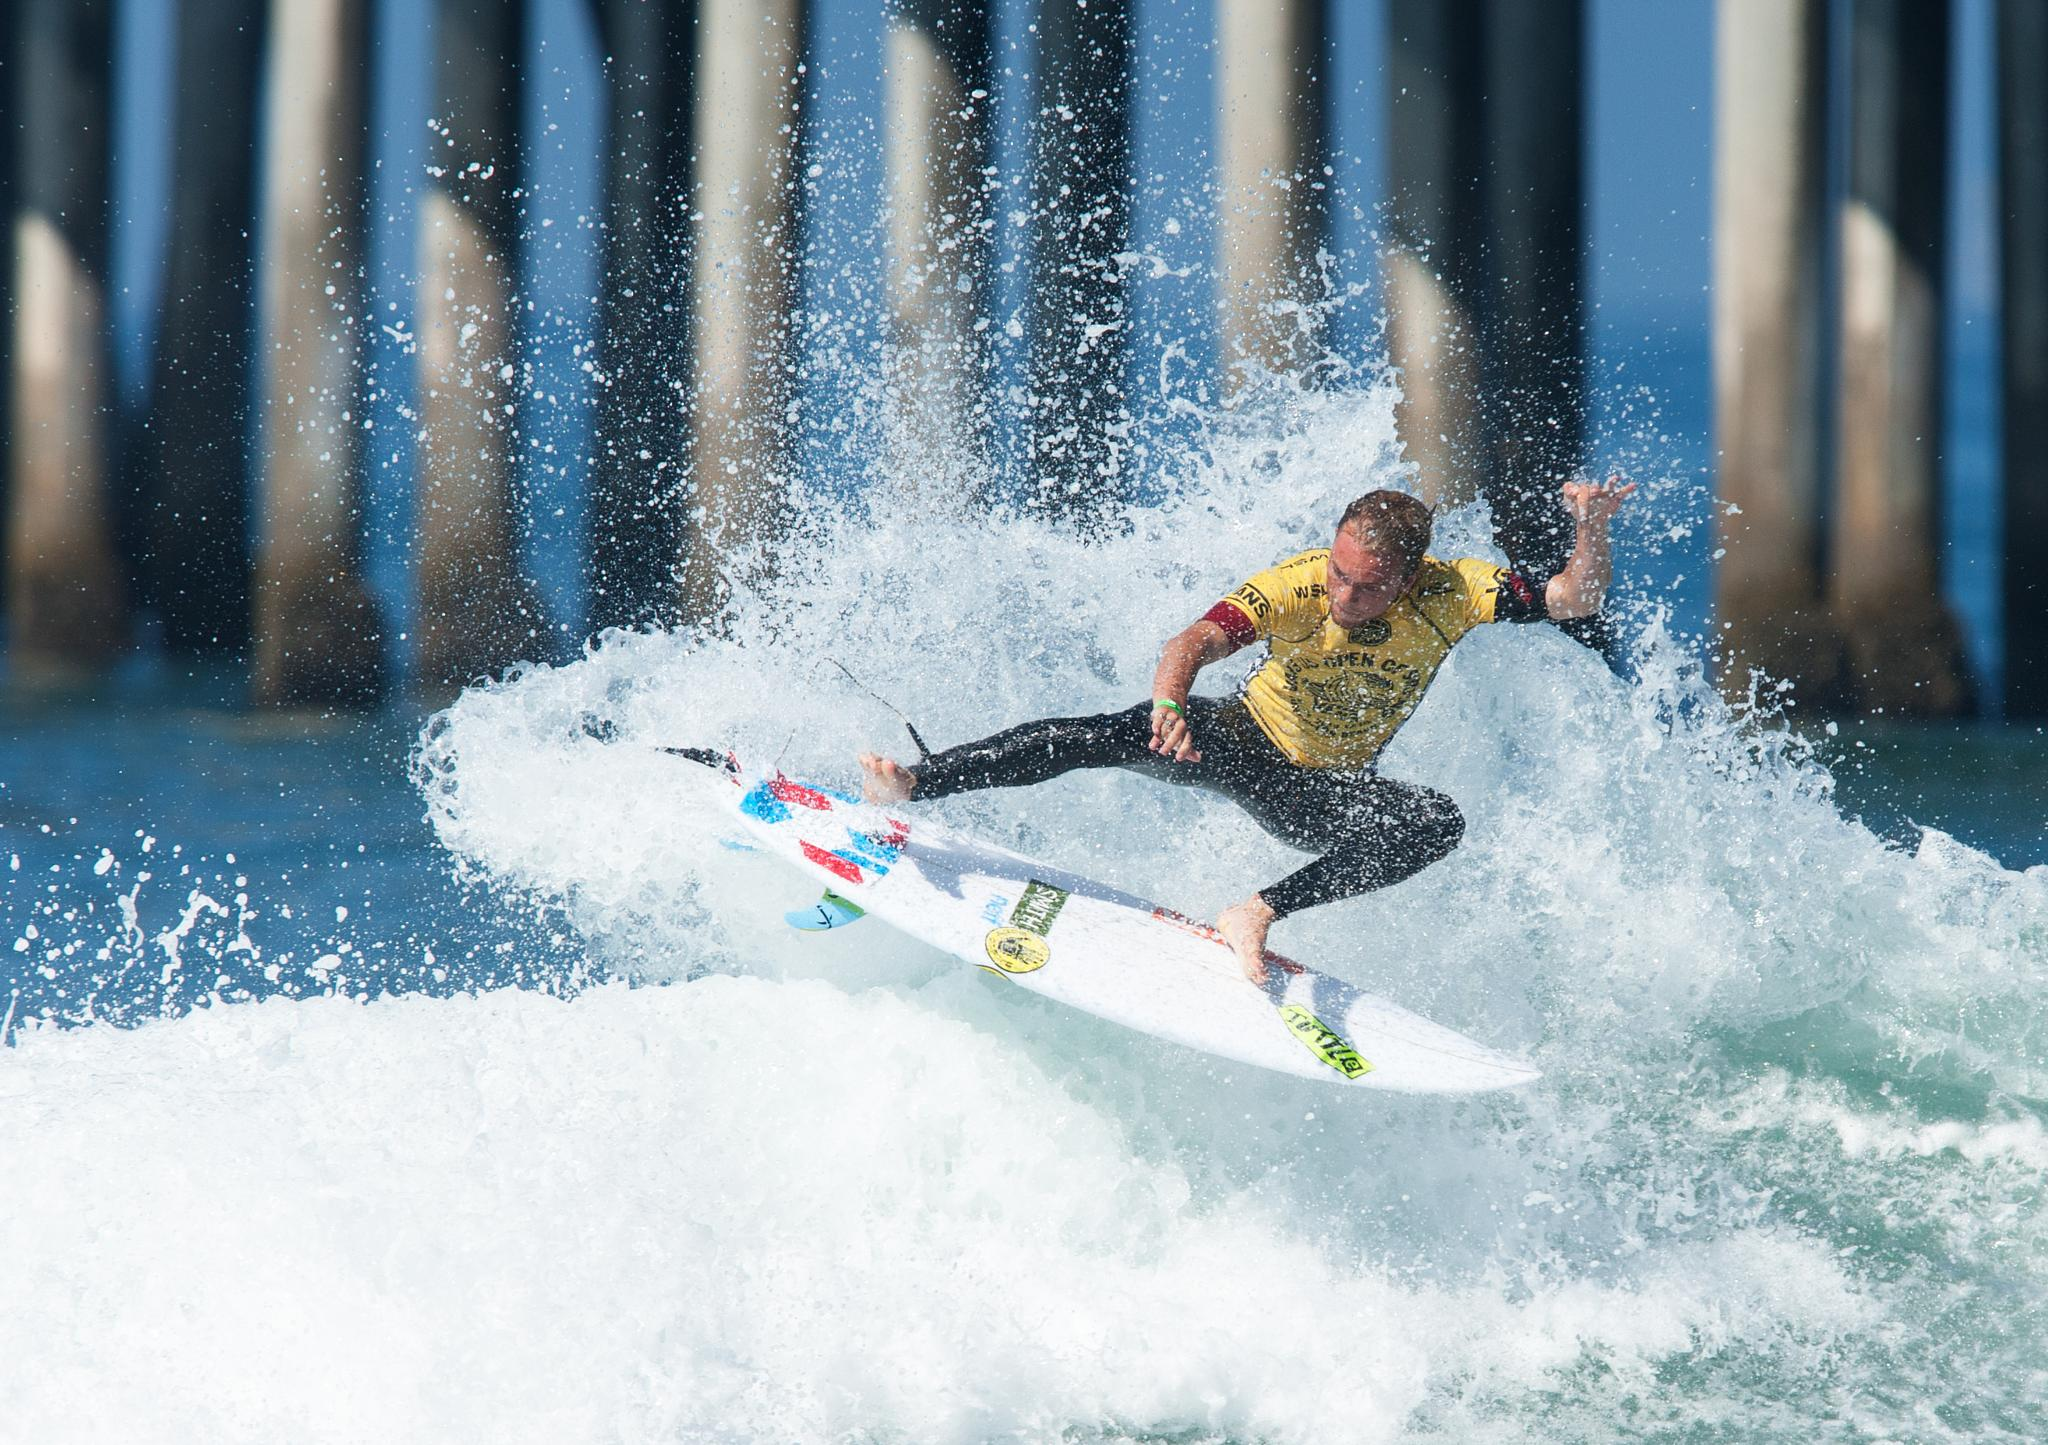 US Open of Surfing 2015 at Huntington Beach - Day 1 by blueskyoveraquatic